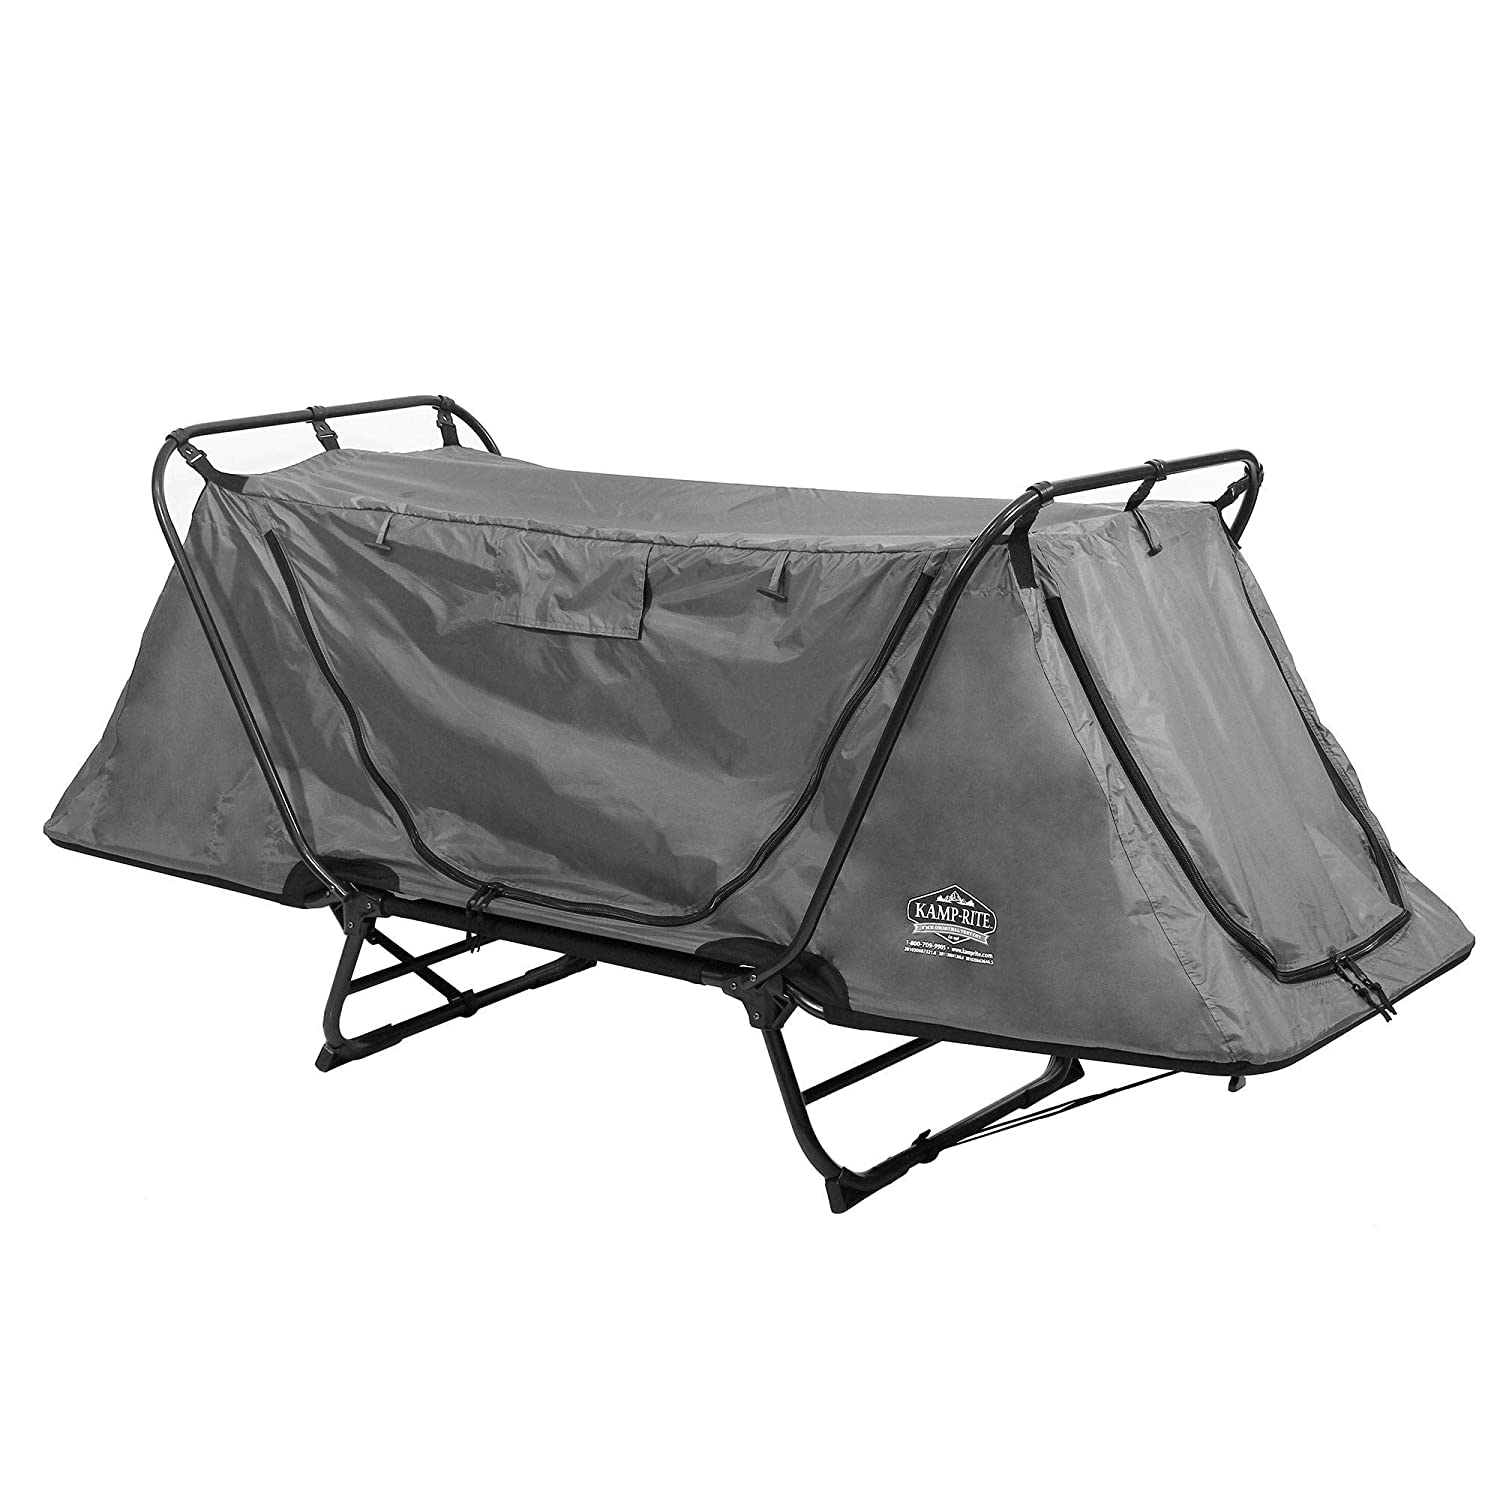 Kamp-Rite Original Tent Cot Camping Bed for 1 Person